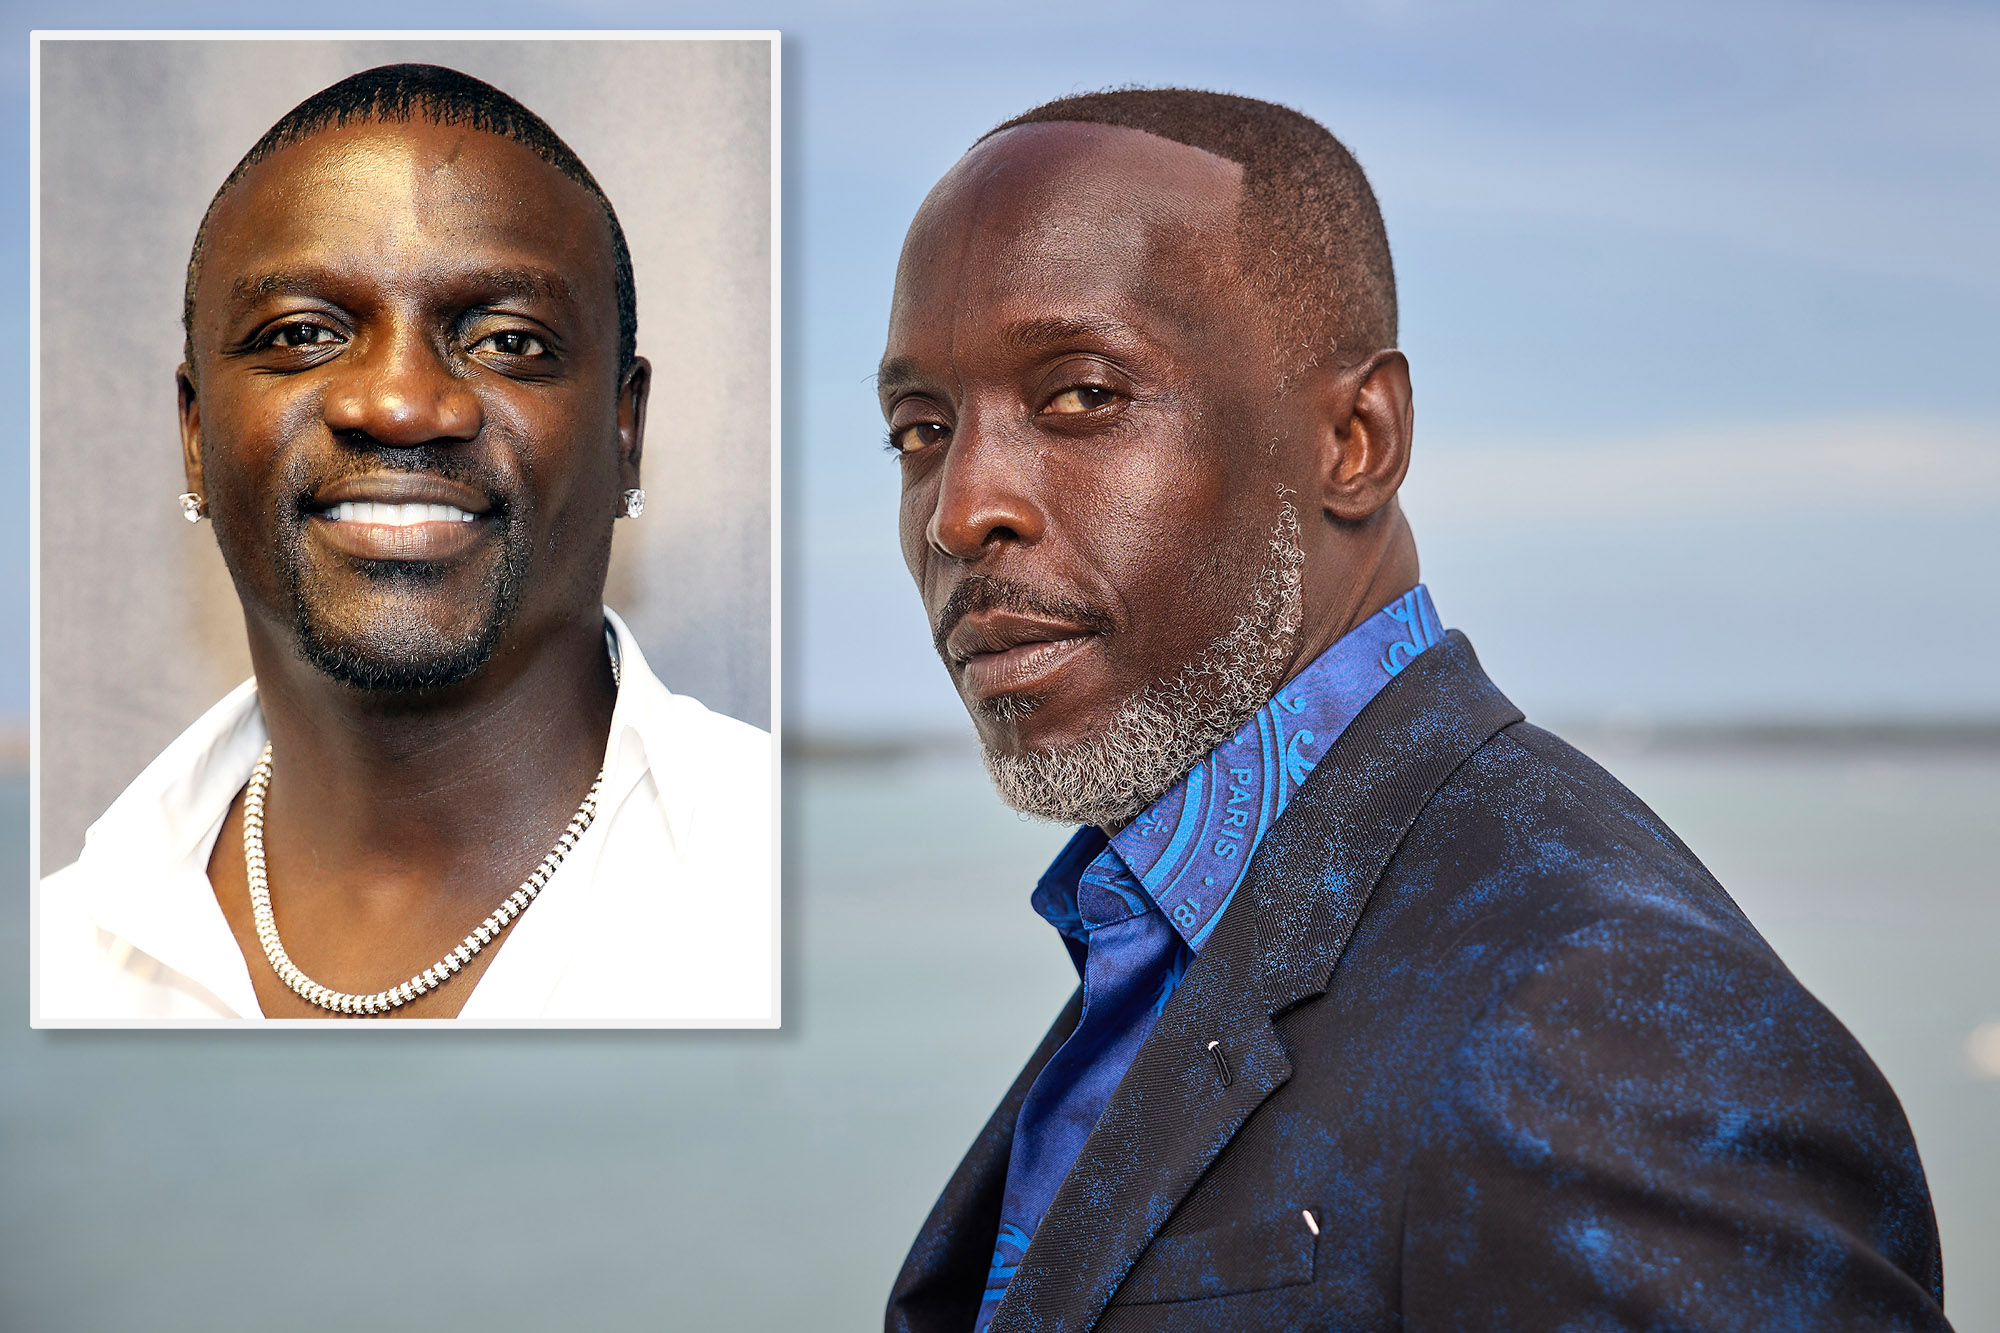 Akon on Michael K. Williams' death: Rich have 'more issues than poor'